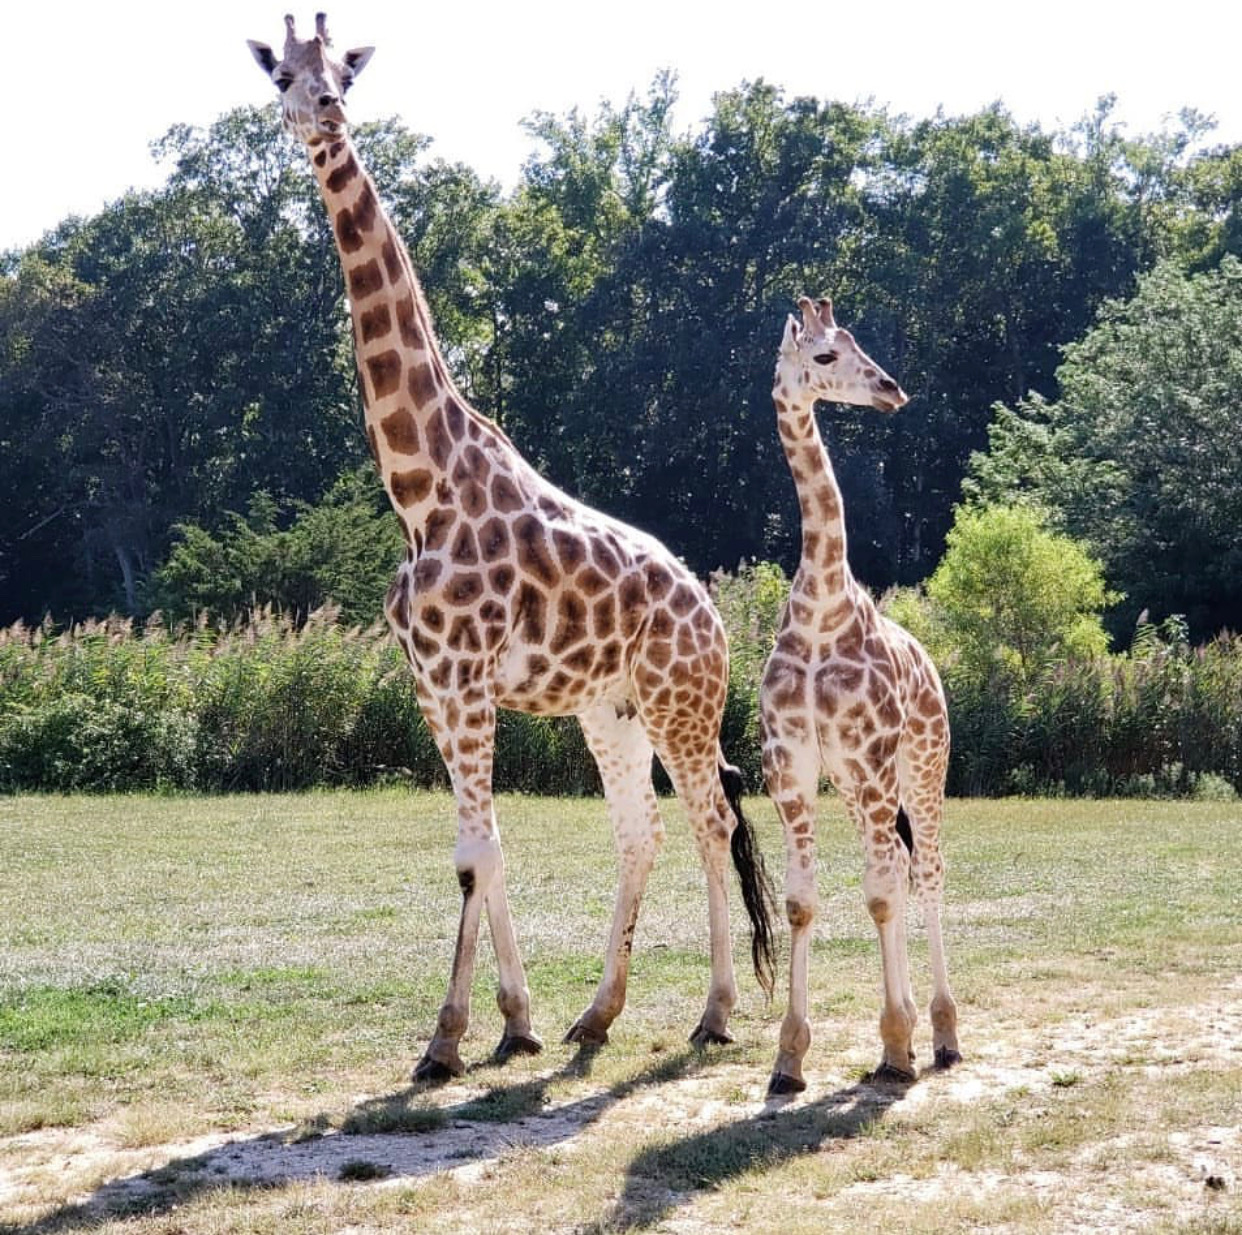 NJ Attractions, cape may county zoo indoor water park aquarium Camden zoo cape may things to do nj visiting places tourist attractions New Jersey kid attractions in nj